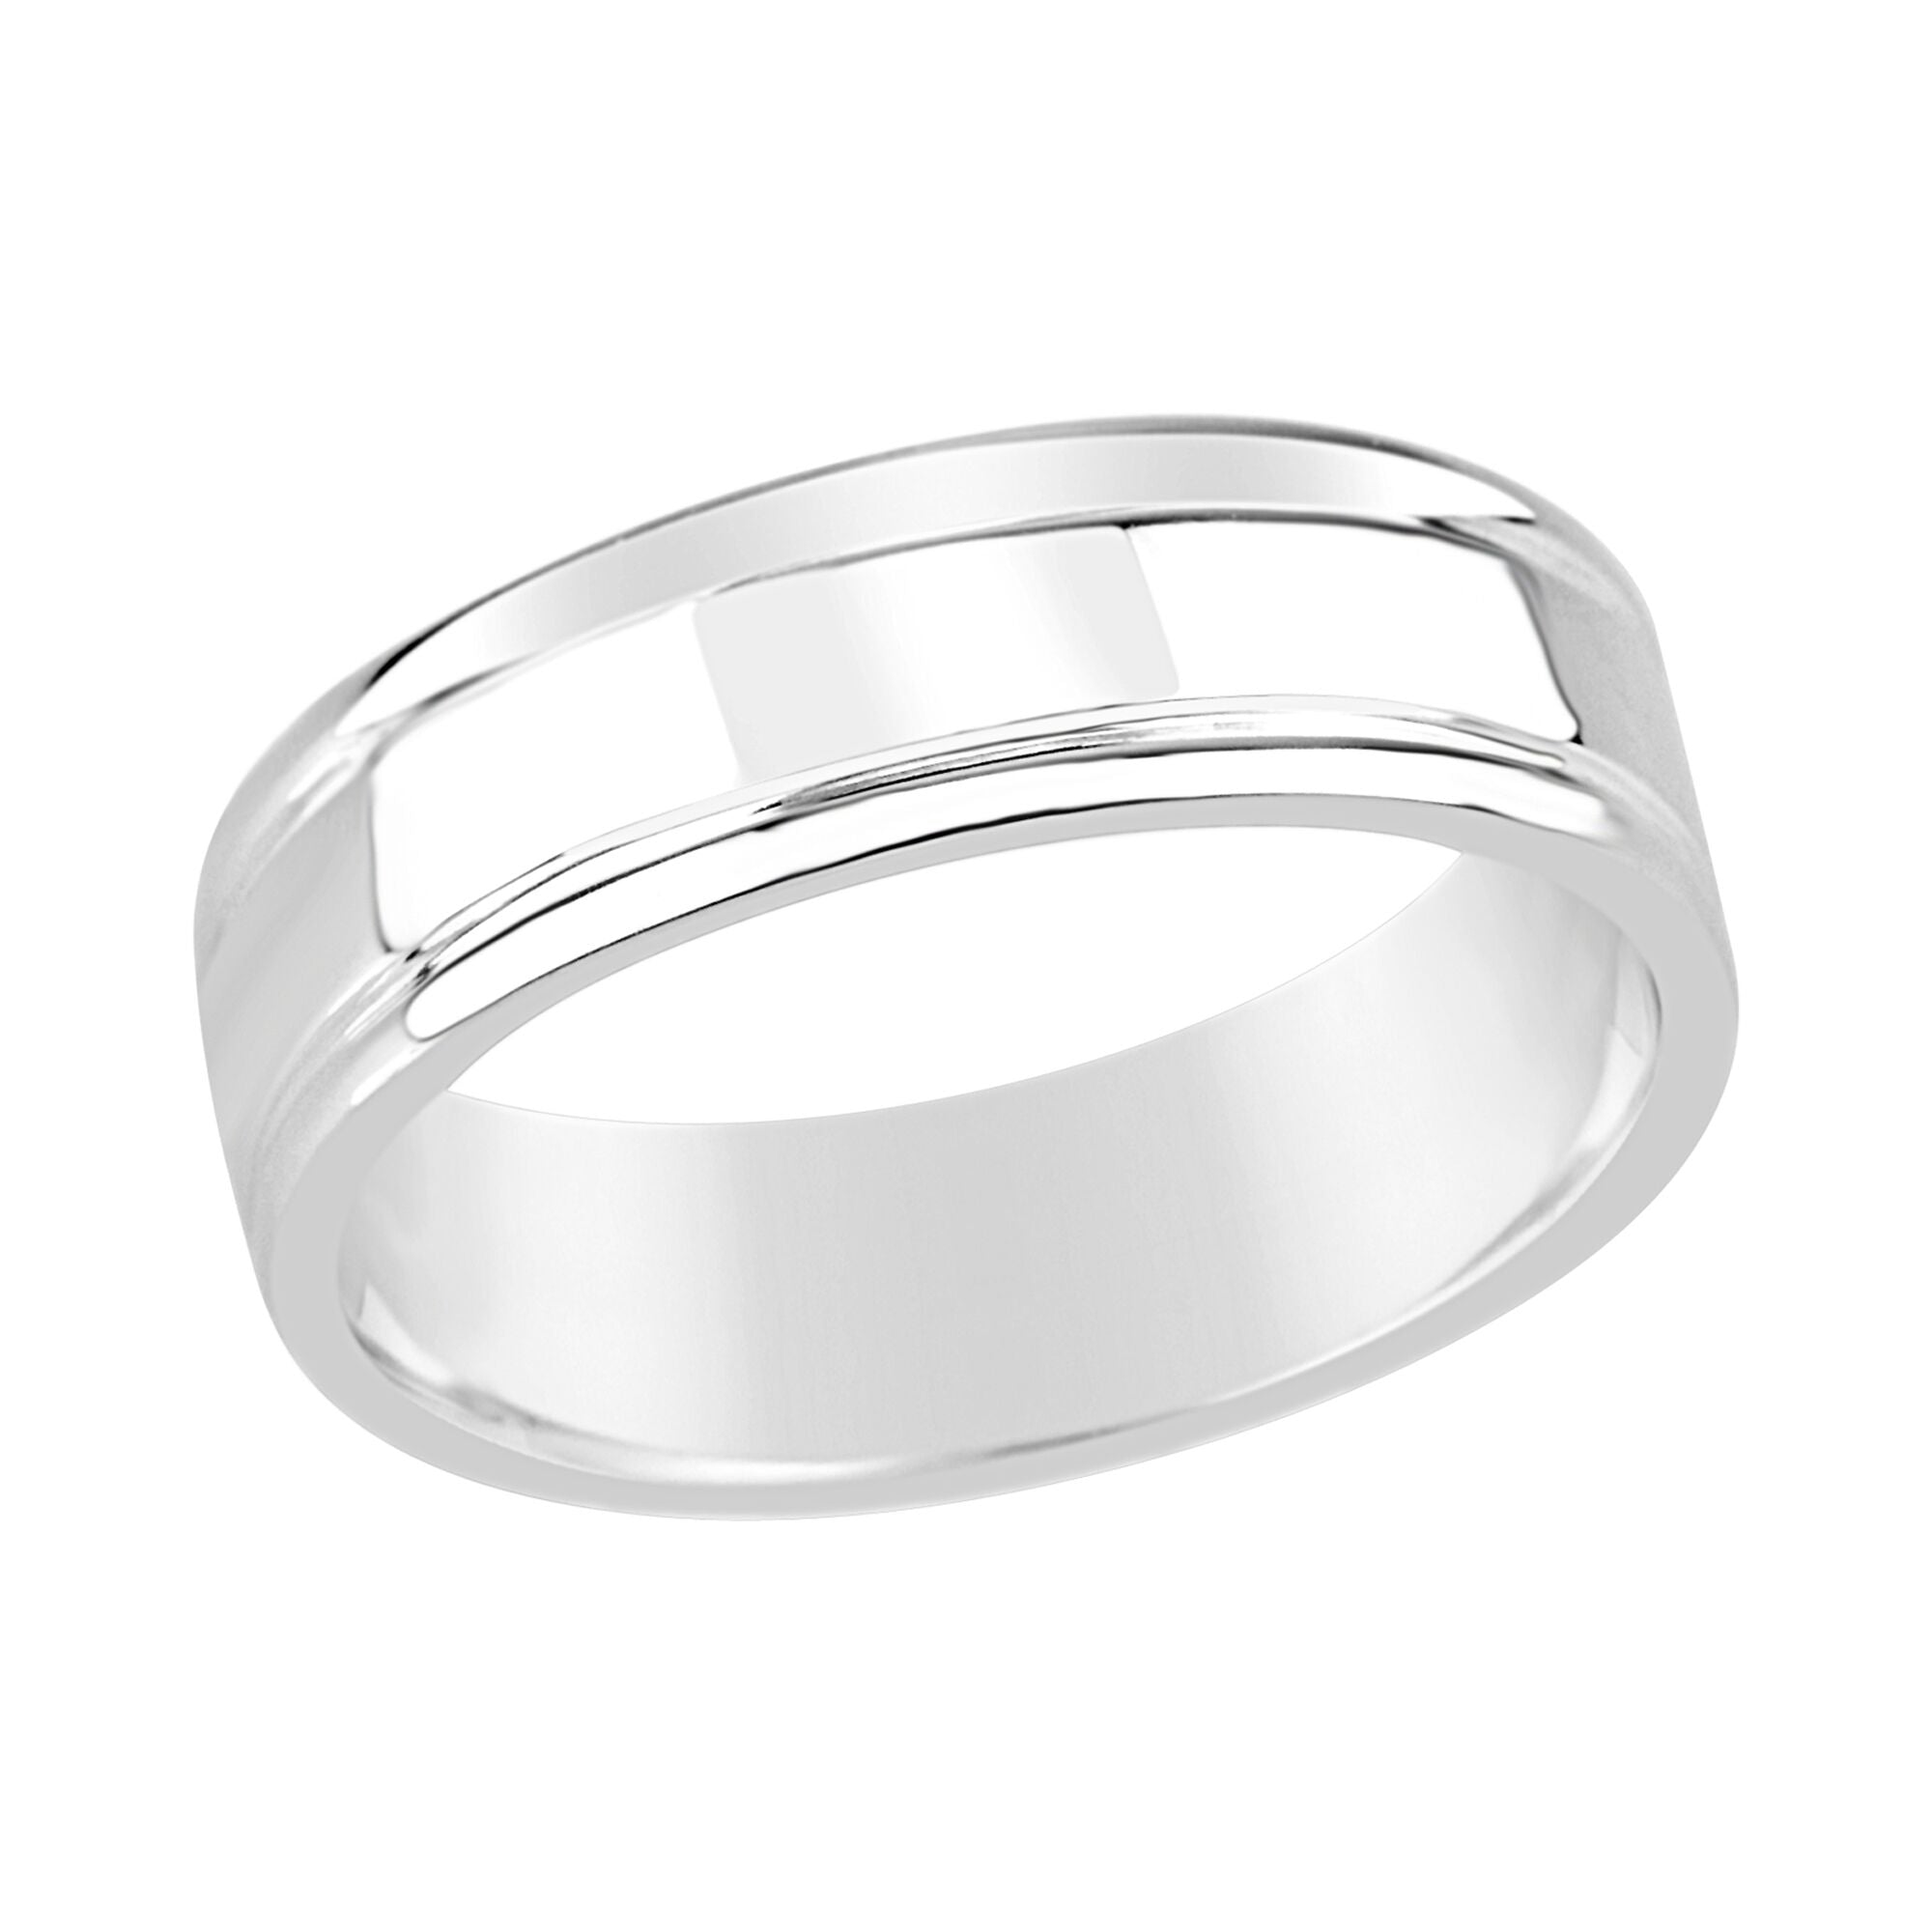 Details About Gents Sterling Silver Fancy Band Ring Design Q208a